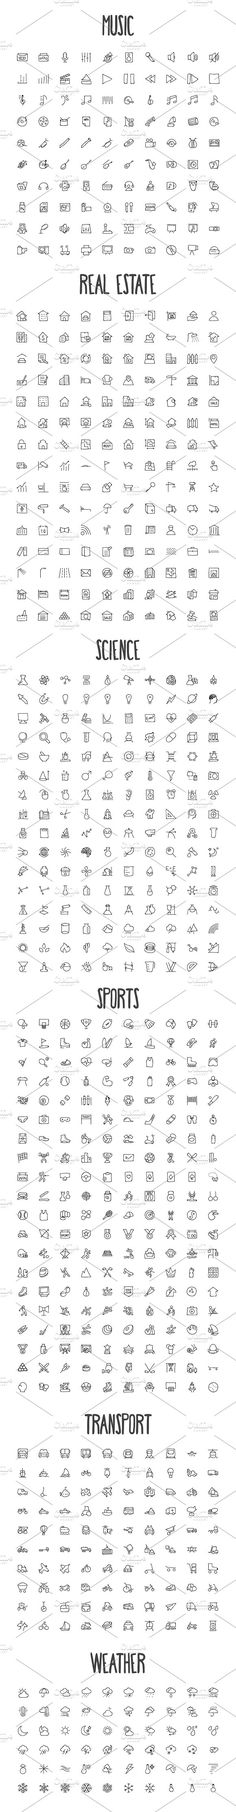 2440 Hand Drawn Doodle Icons Bundle - Icons